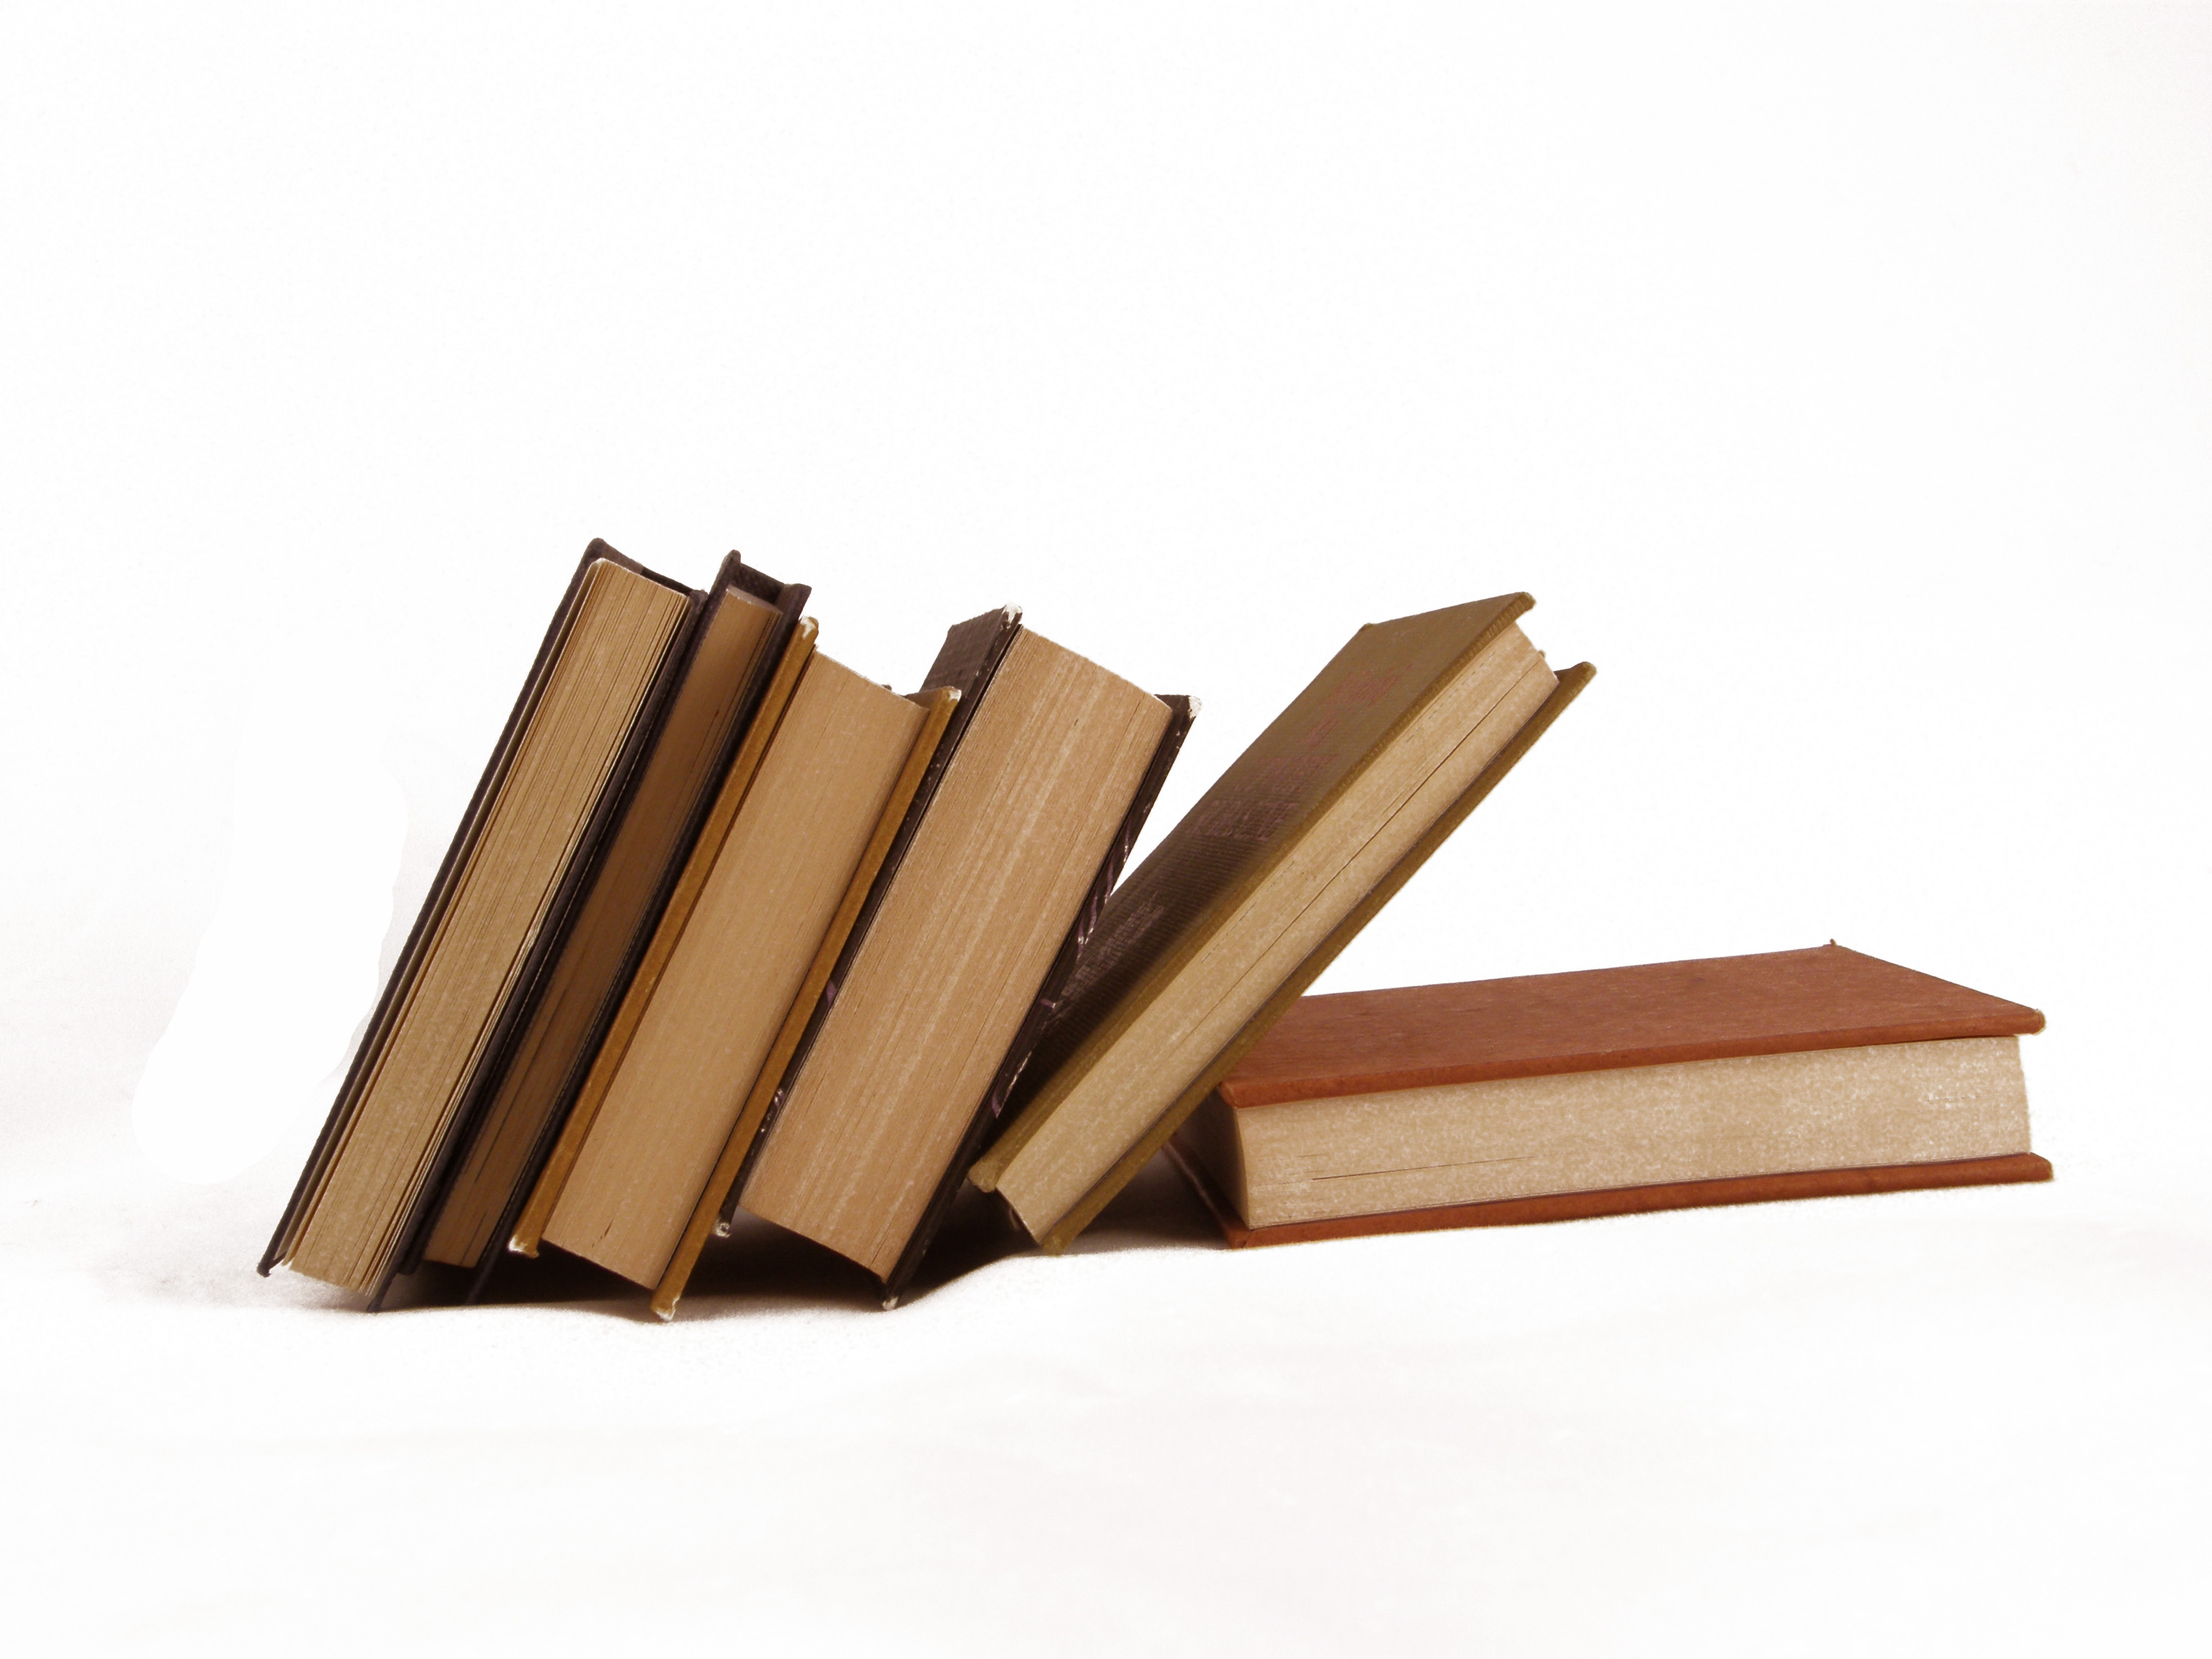 Top five must-read business books